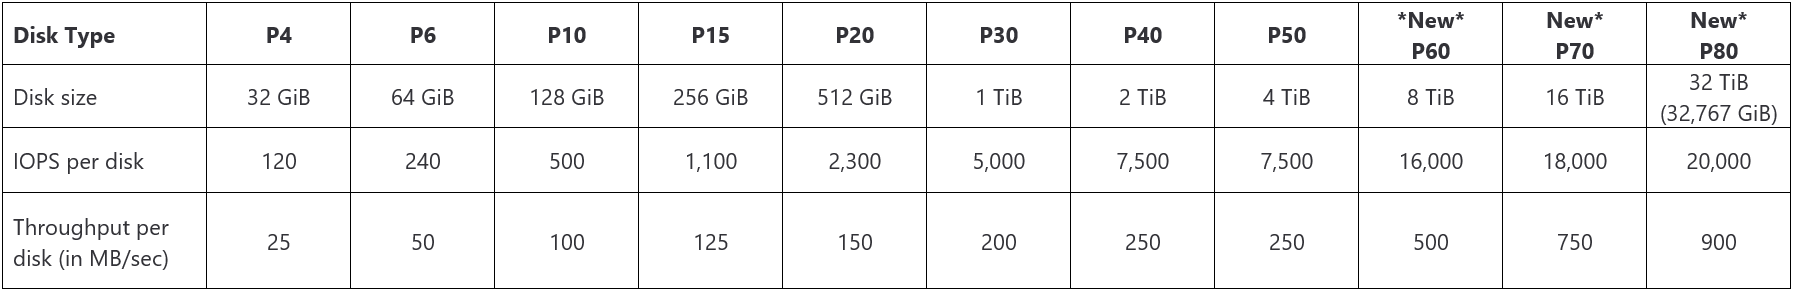 Table displaying Premium SSD disks type, size, IOPS per disk, and throughput per disk.